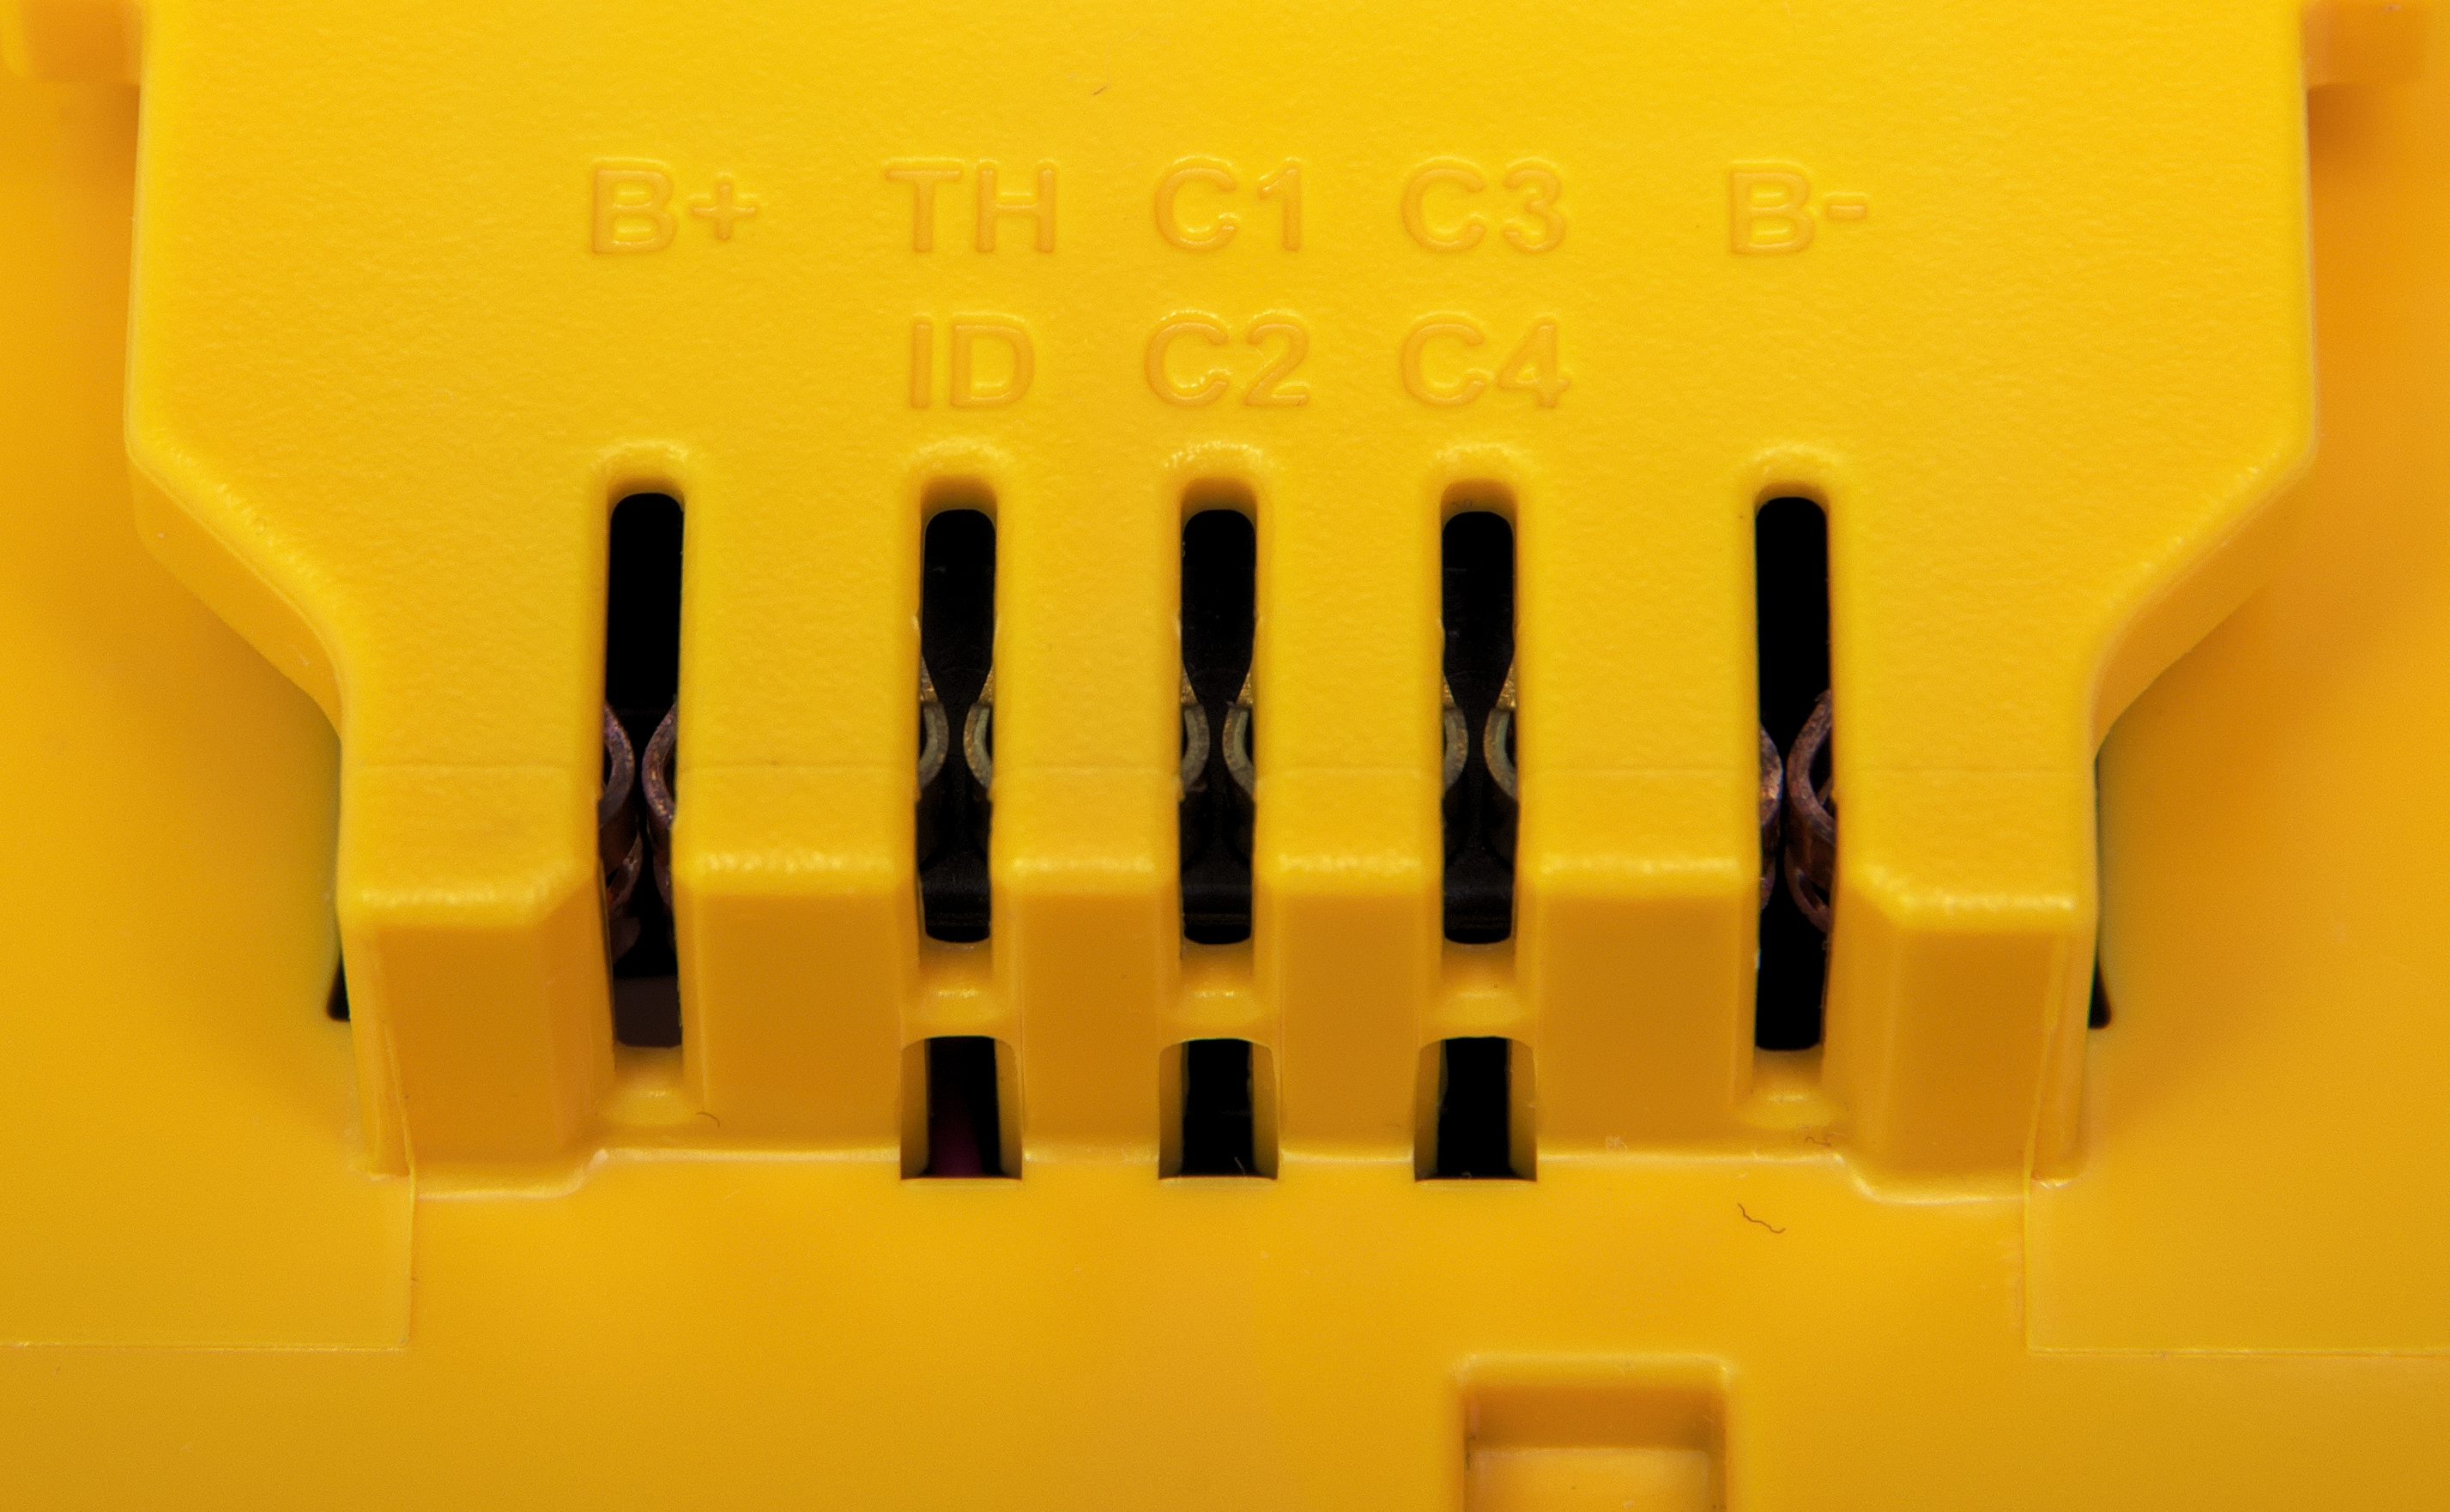 File:Contacts on DeWalt 20V Max battery.jpg